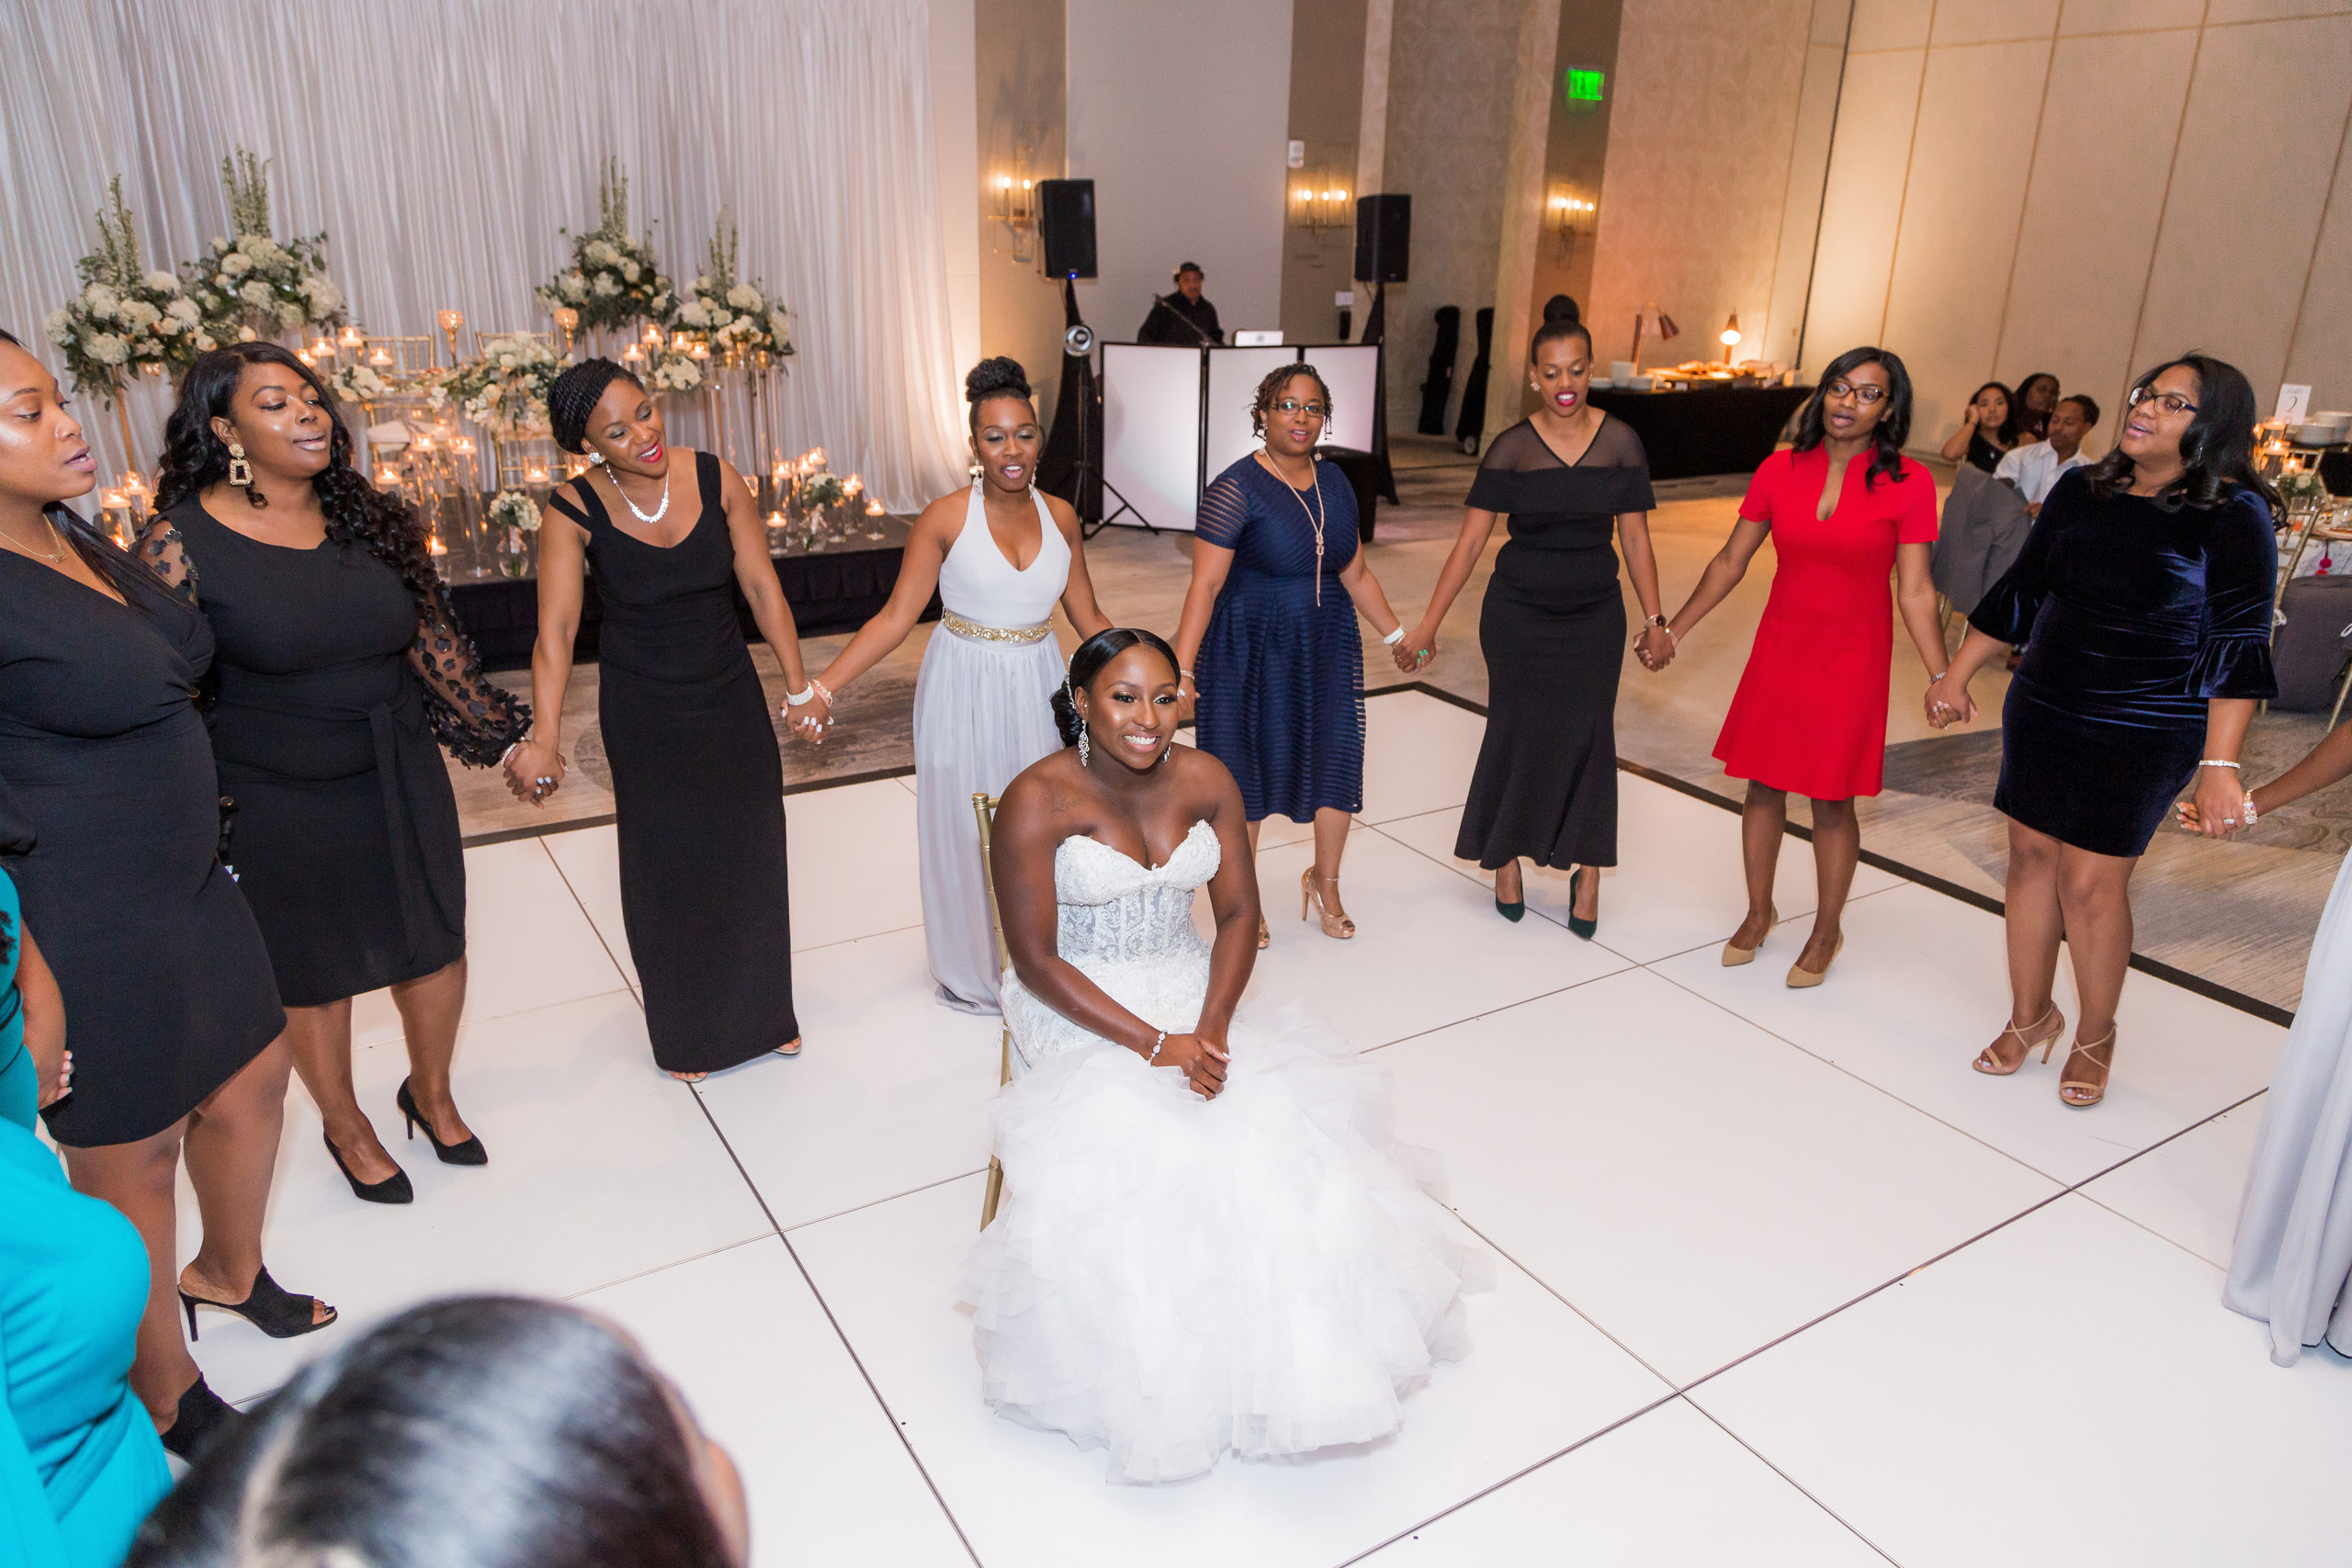 The ladies of Delta Sigma Theta Sorority Incorporated saranade the bride on the dancefloor during the wedding reception at the Hilton Main in Norfolk, Virginia.